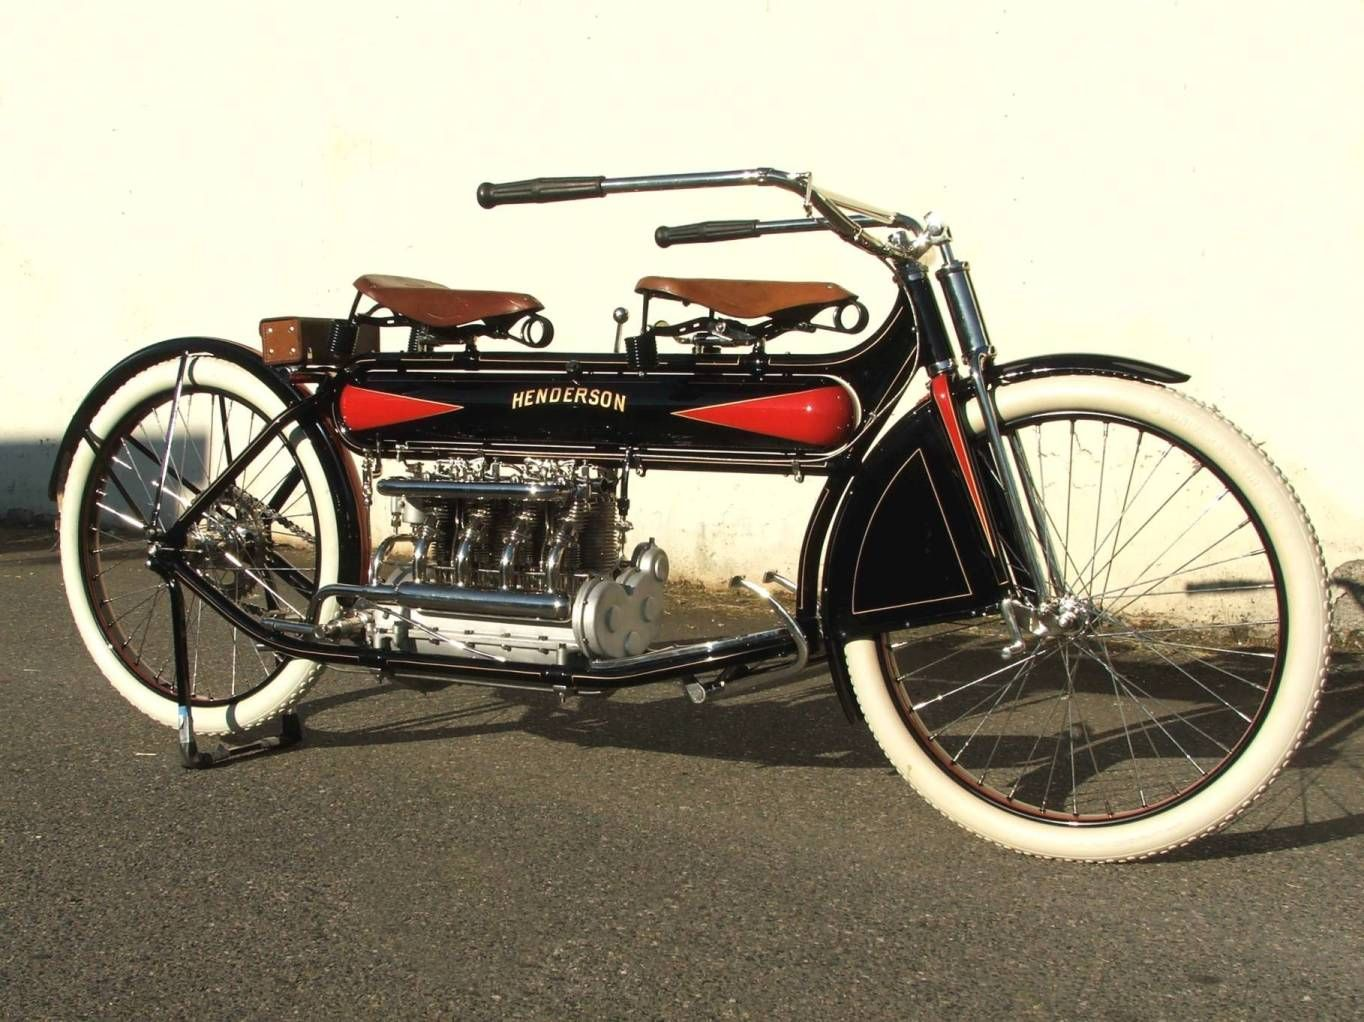 Vintage Motorcycles Images To Expand Your View Of Our Featured